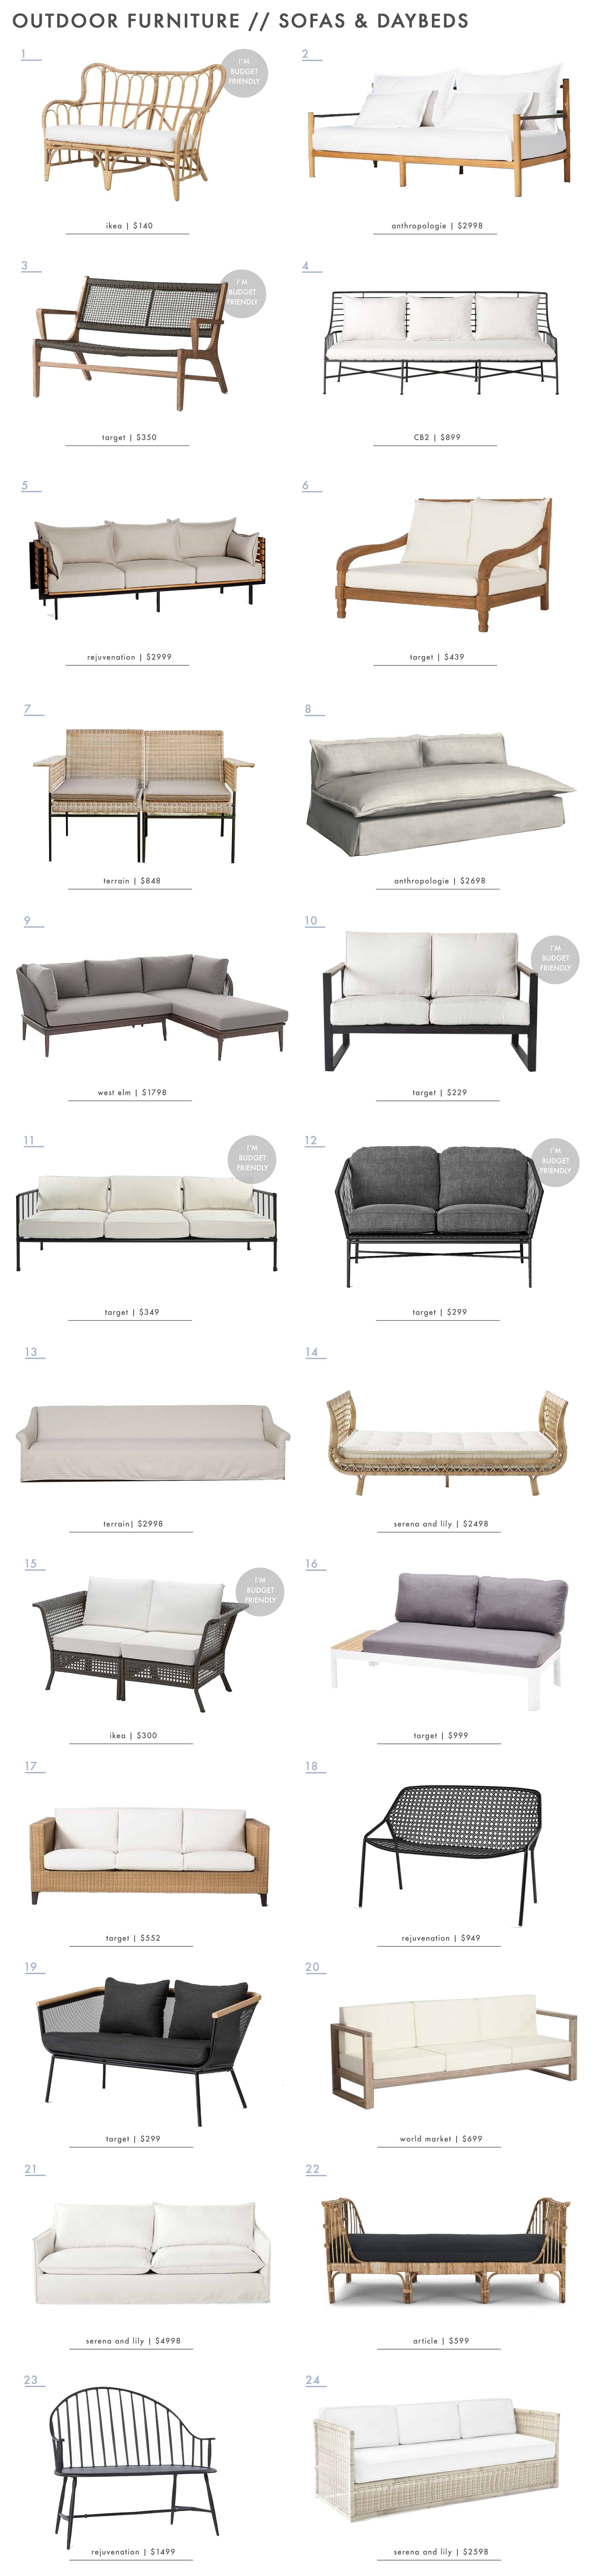 Outdoor Furniture Roundup Emily Henderson Lounge Furniture Sofa Sectional1